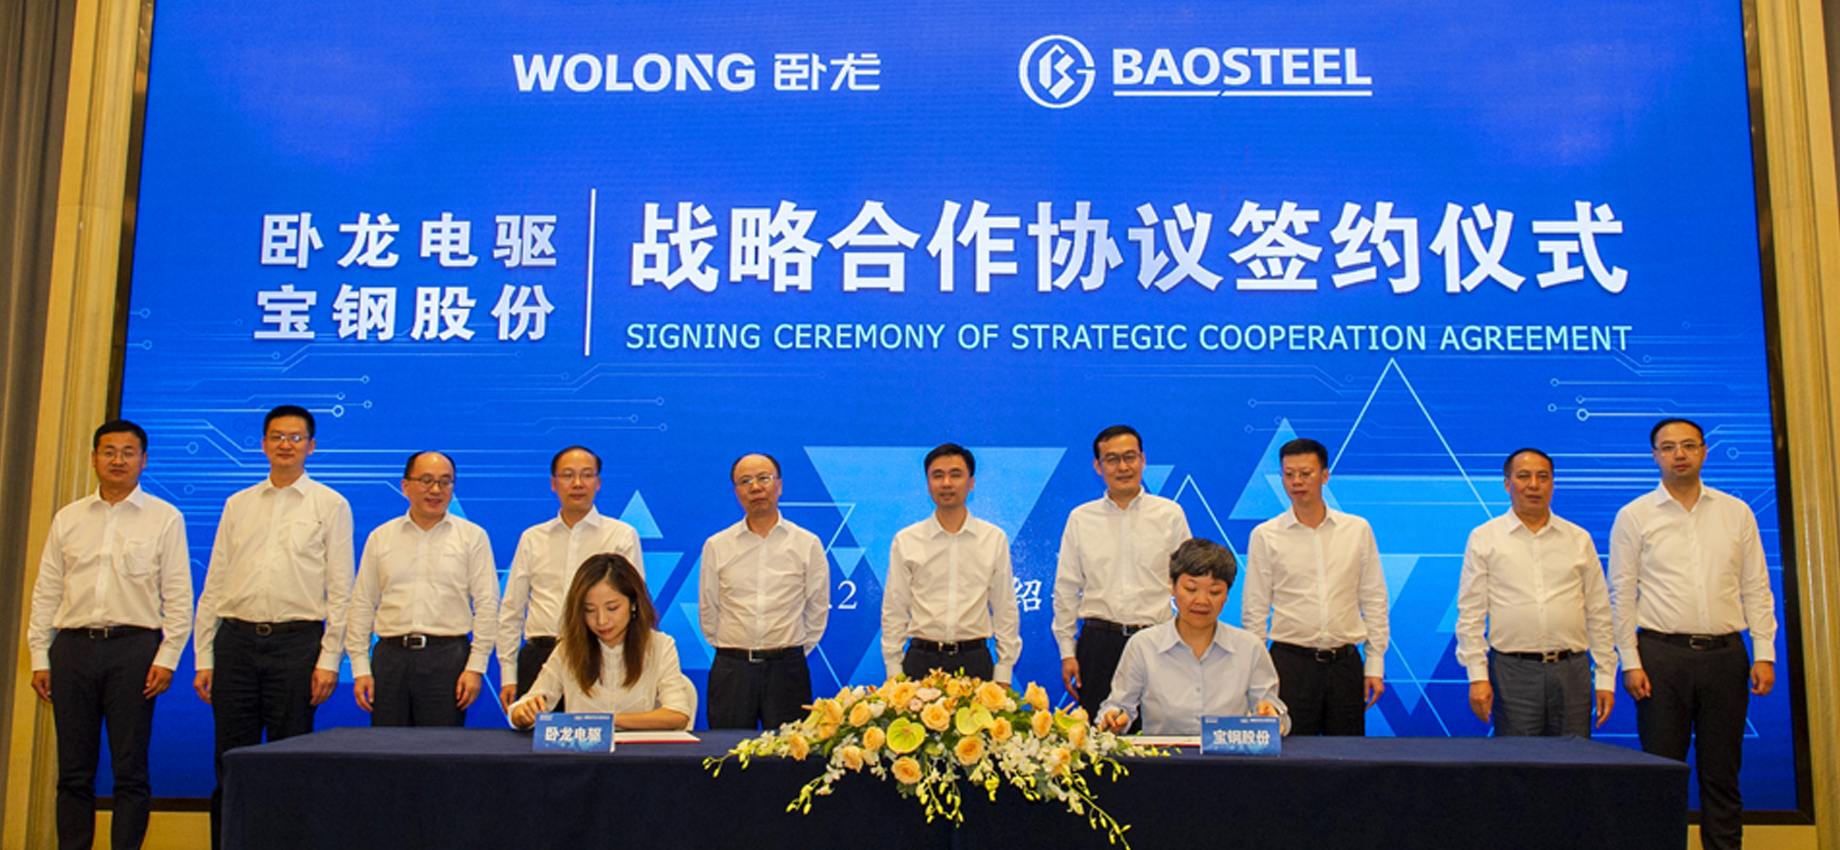 Wolong Electric and Baosteel Co., Ltd. signed a strategic cooperation agreement!